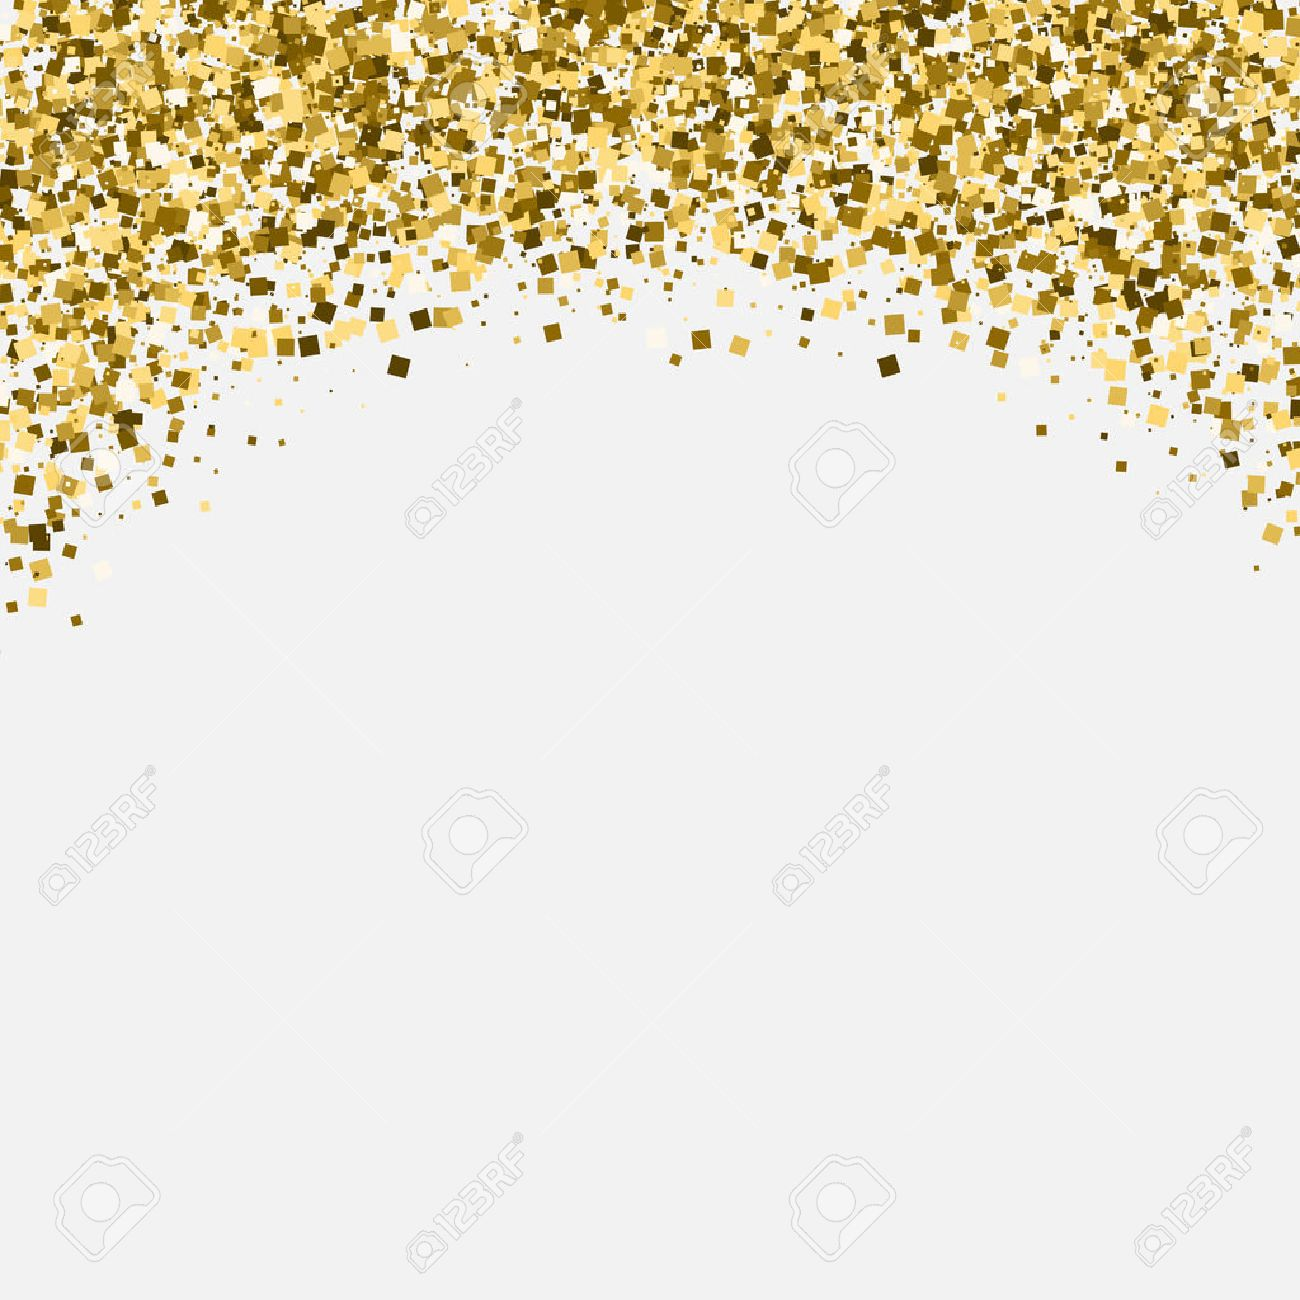 Gold glitter shimmery heading. Invitation card or flyer with sparkling top on white background. - 50012147